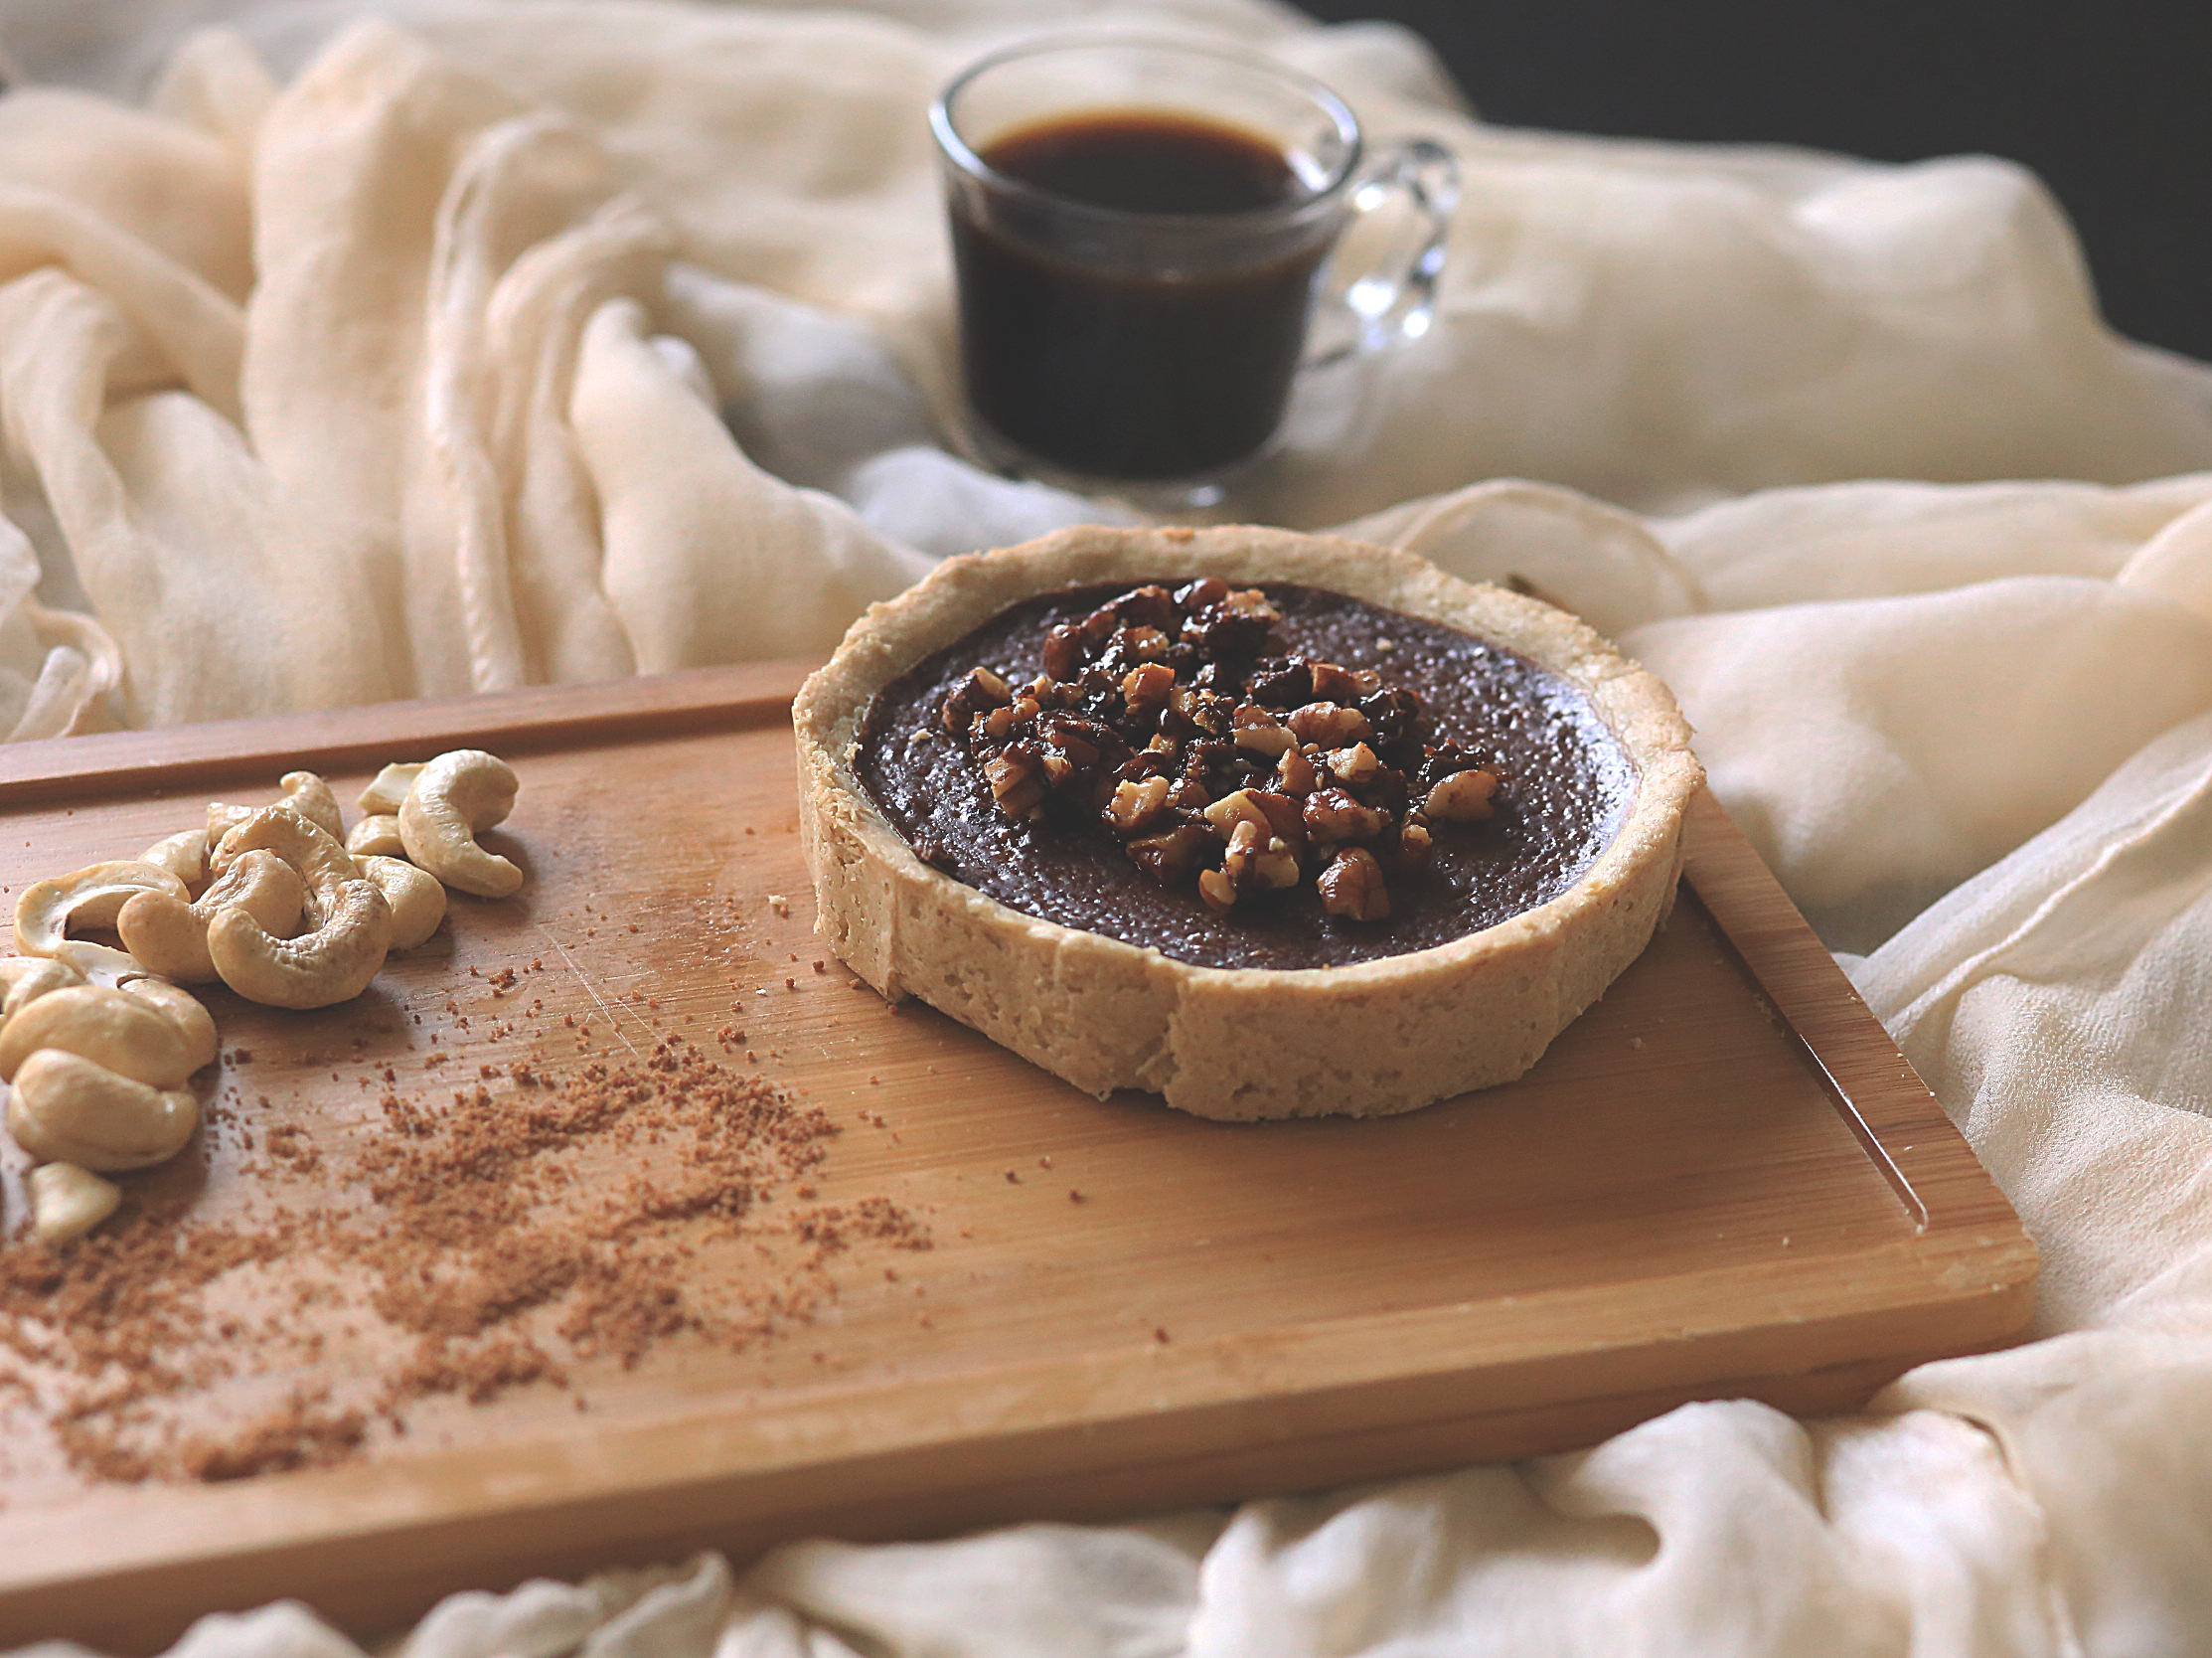 Carob cashew pie with toasted pecan this cashew pie recipe is inspired by two of my favorite food bloggers first is kevin if you follow my blog you must know him forumfinder Images